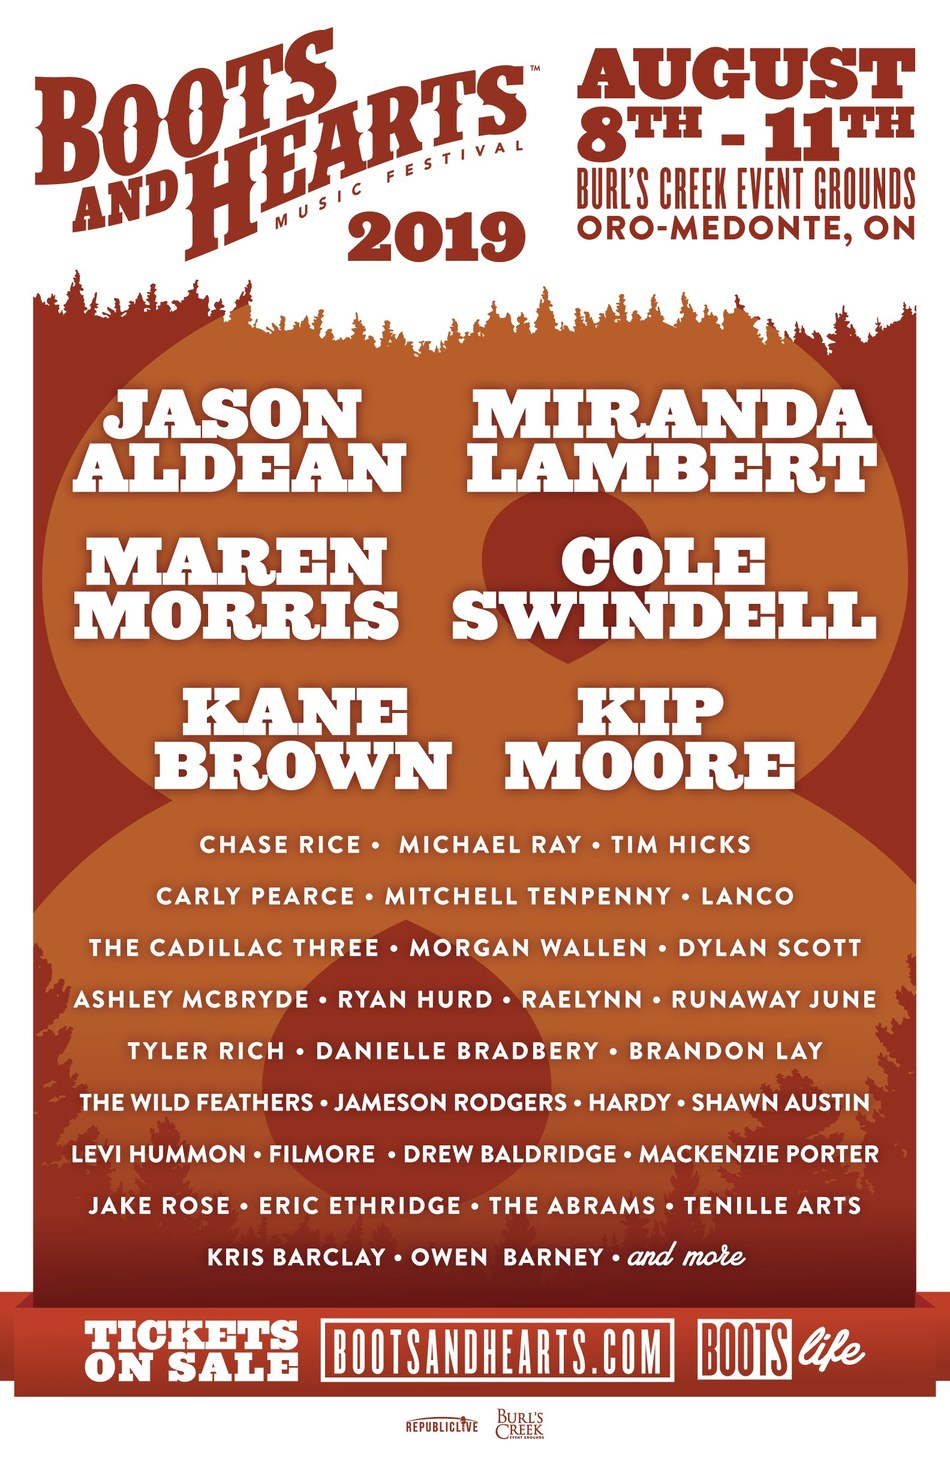 Boots and Hearts 2019 full line-up (CNW Group/Boots and Hearts Music Festival)